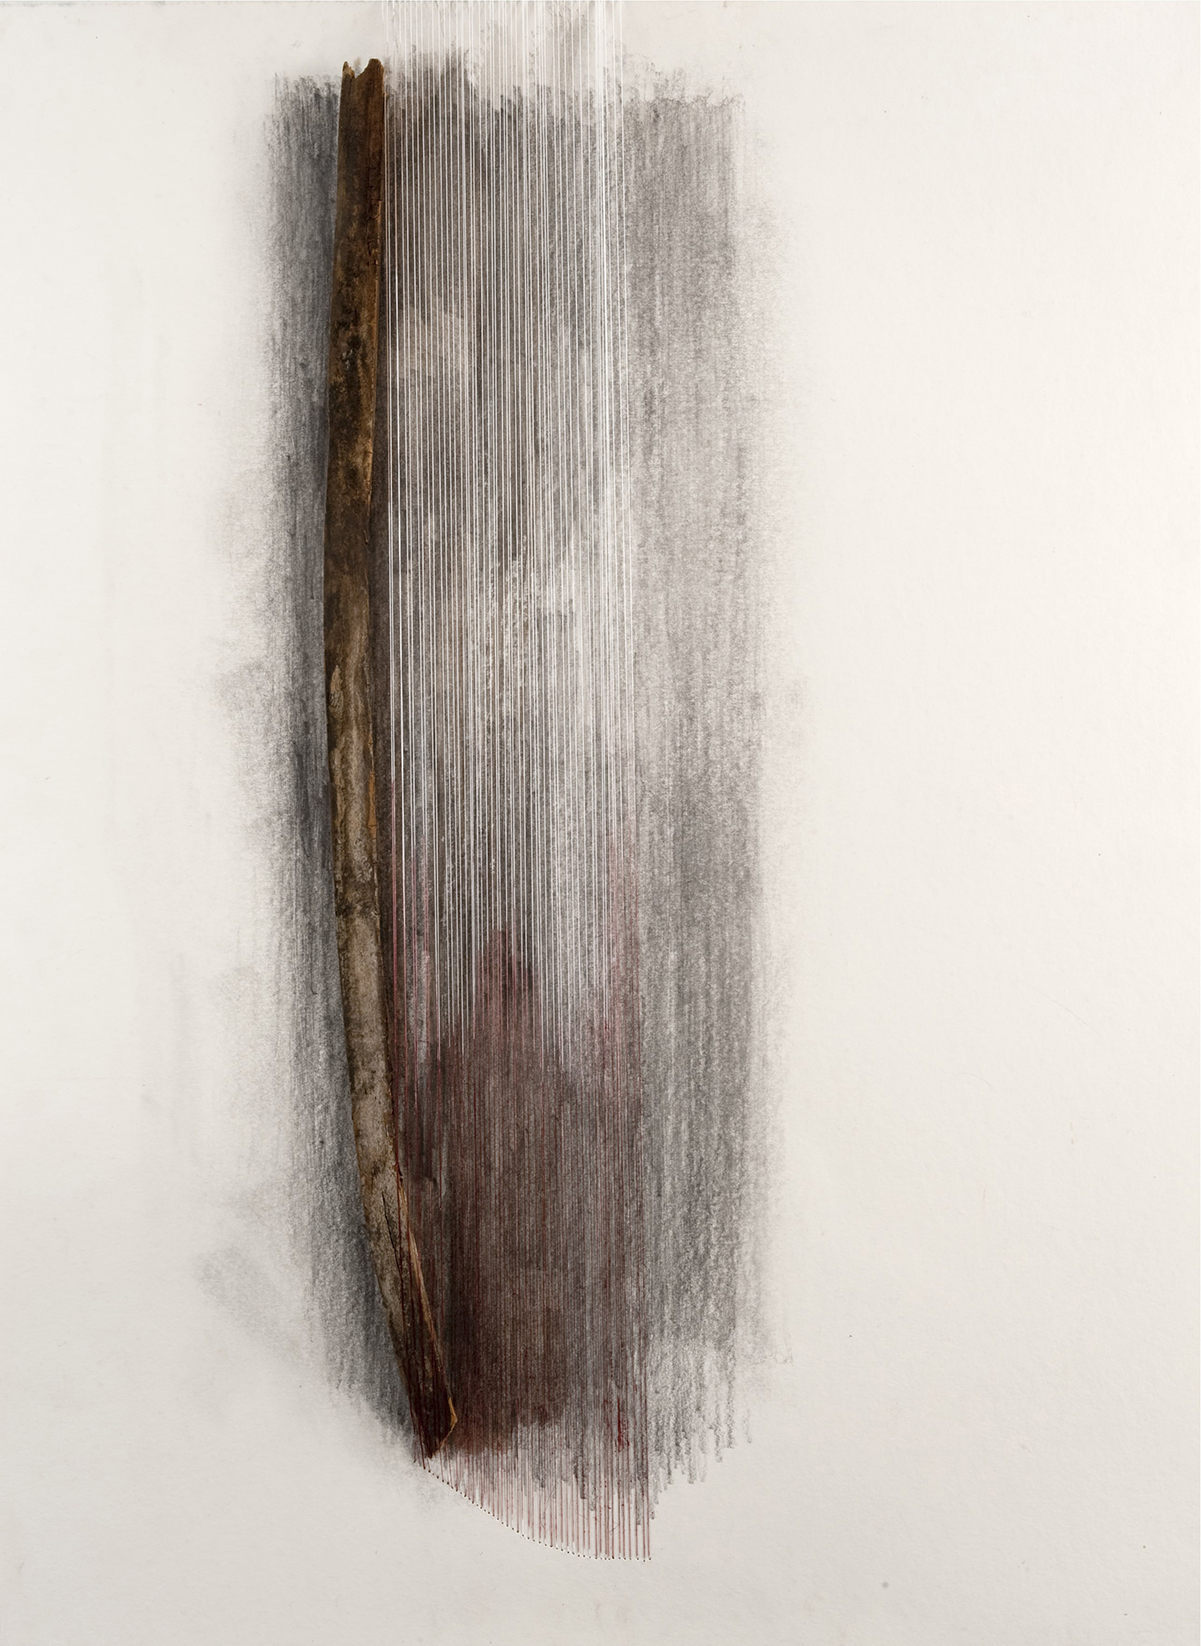 TRACES   Found wood, pencil, paper, thread  30 x 22 Inches